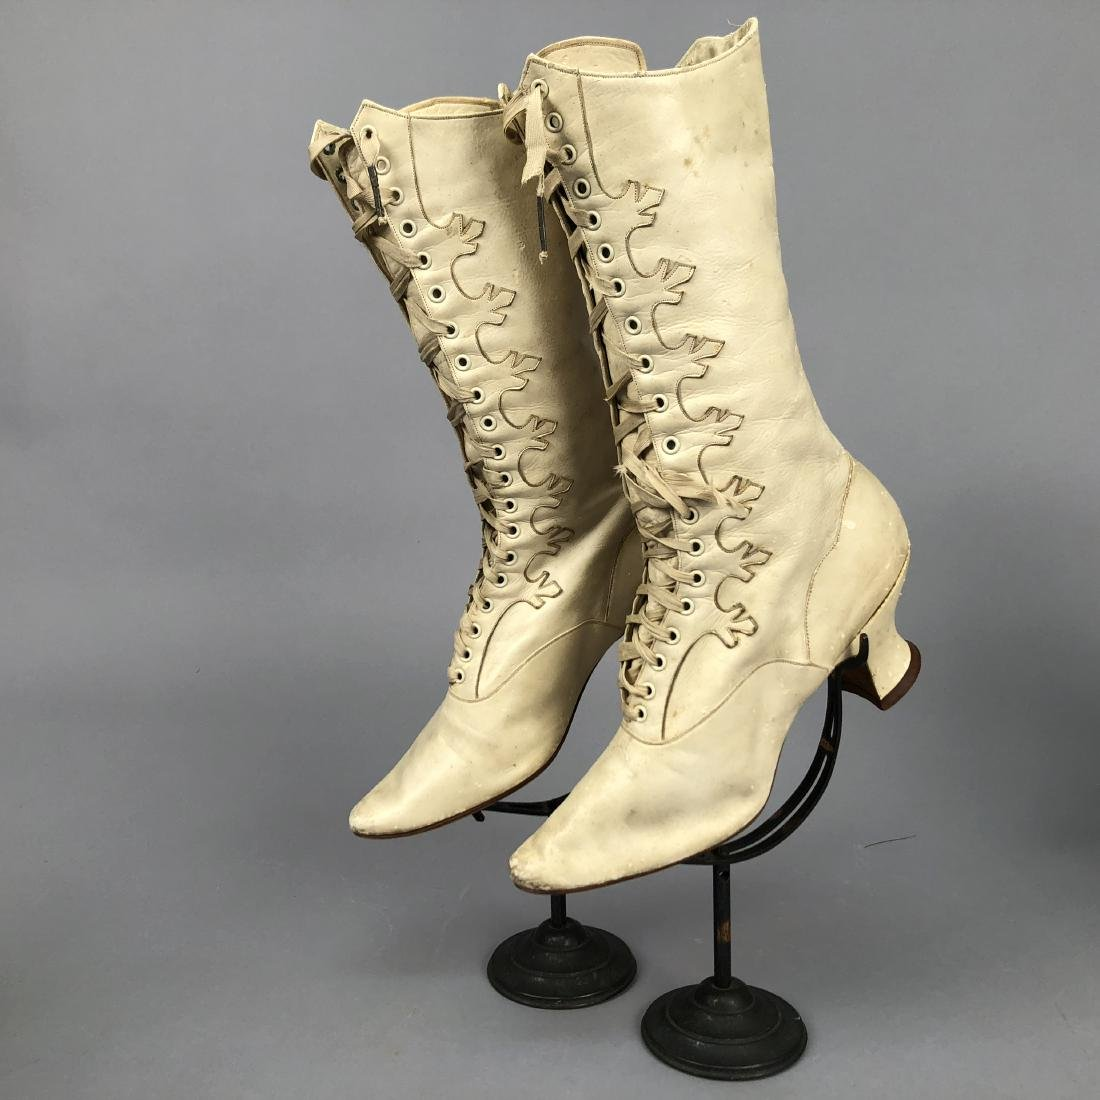 FOUR PAIR LADIES' LACING BOOTS, 1890s - 4